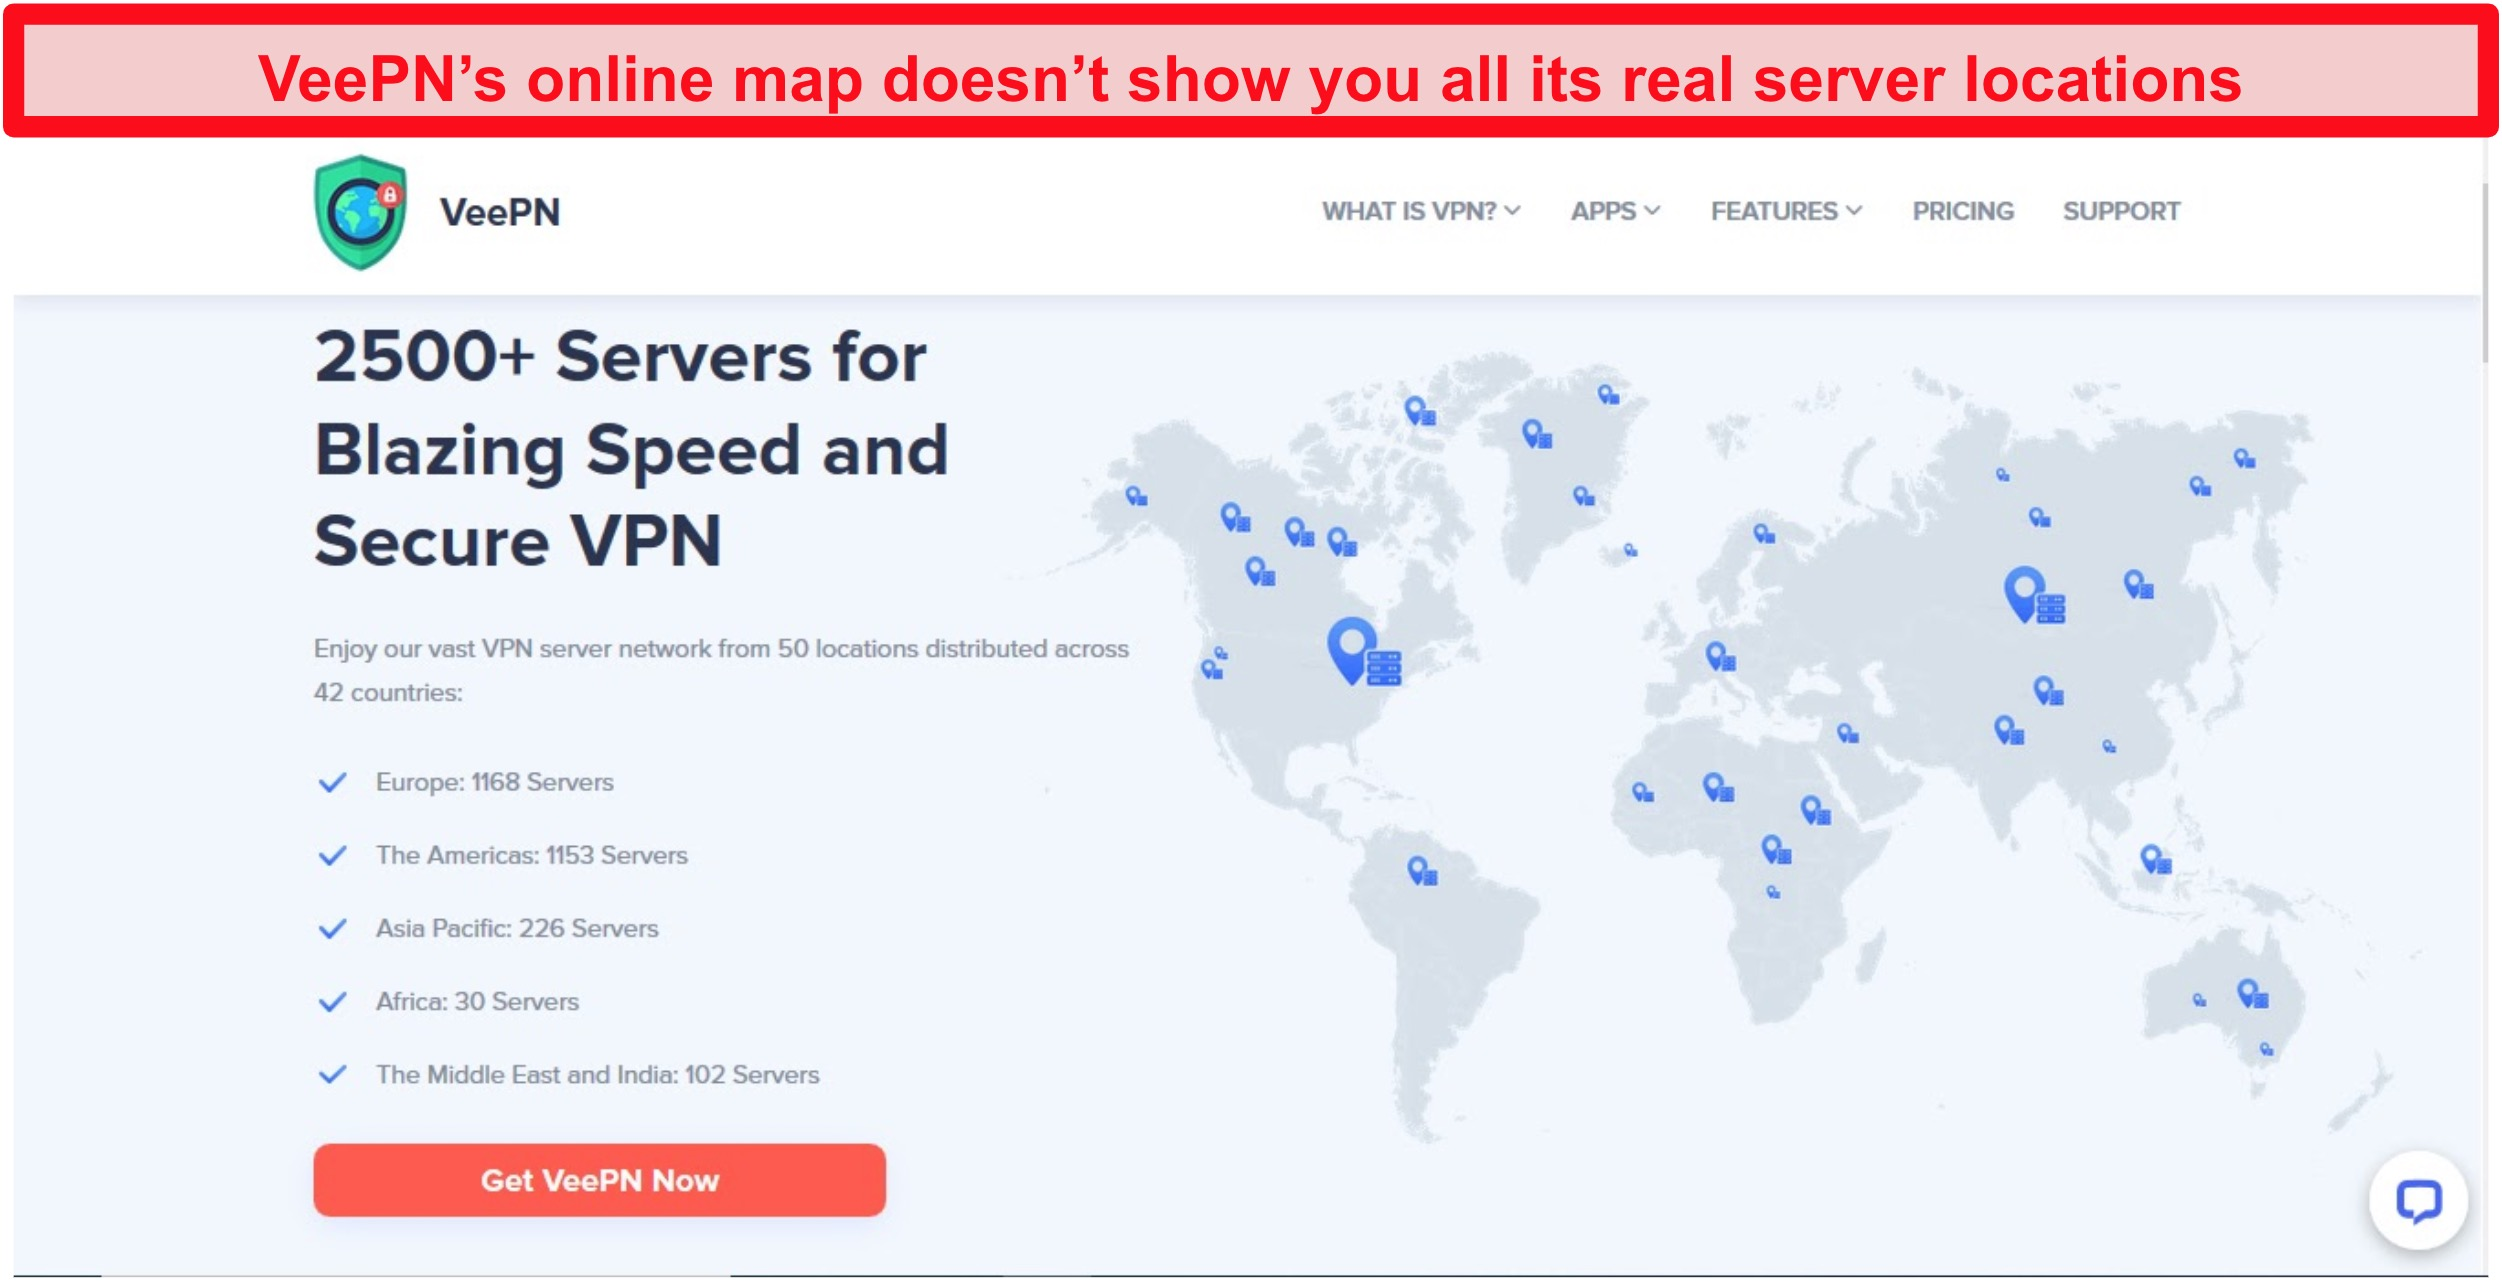 Screenshot from the VeePN website showing its server map with inaccurate locations